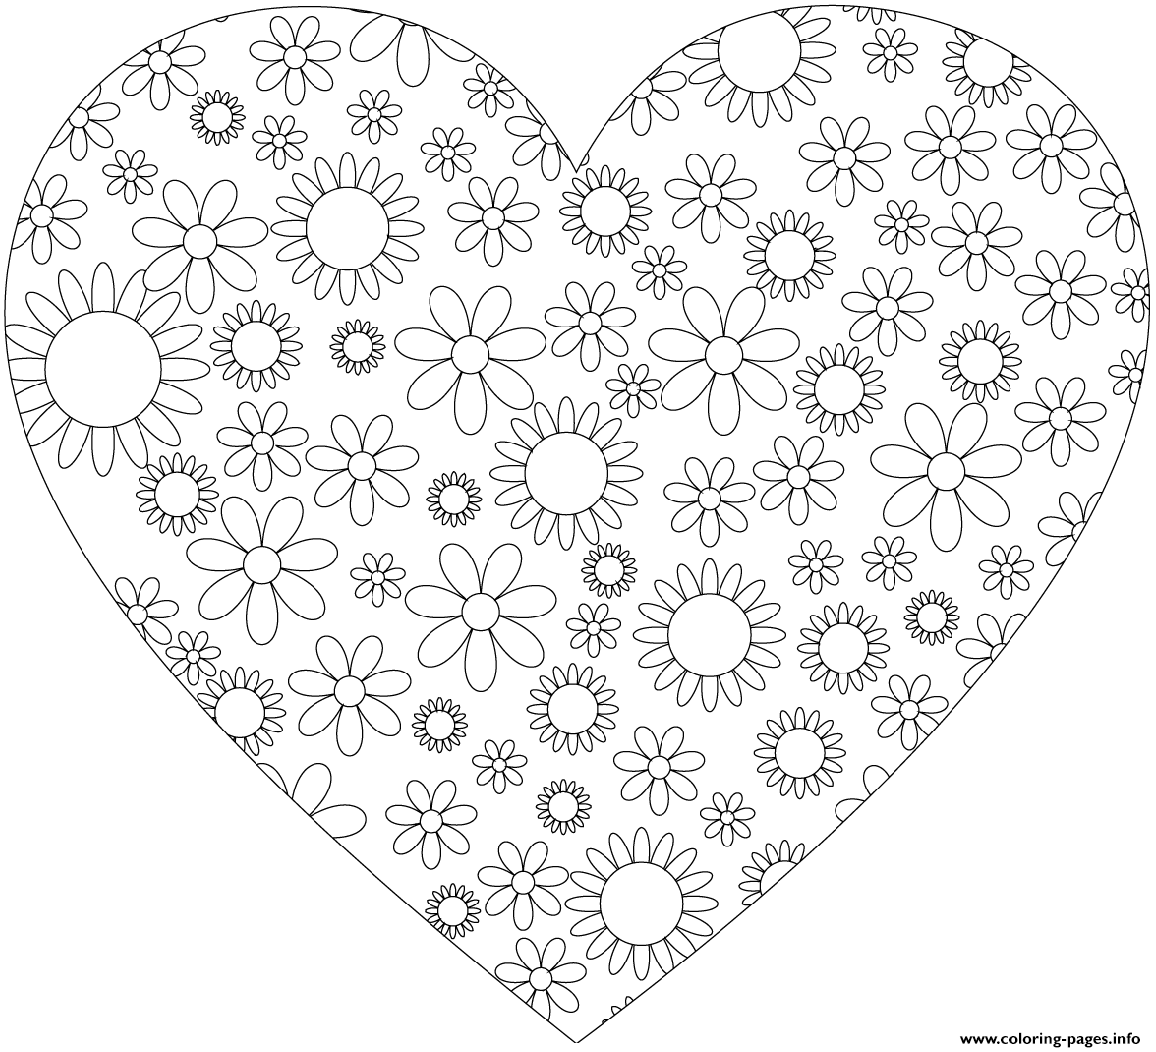 Heart With Flowers coloring pages